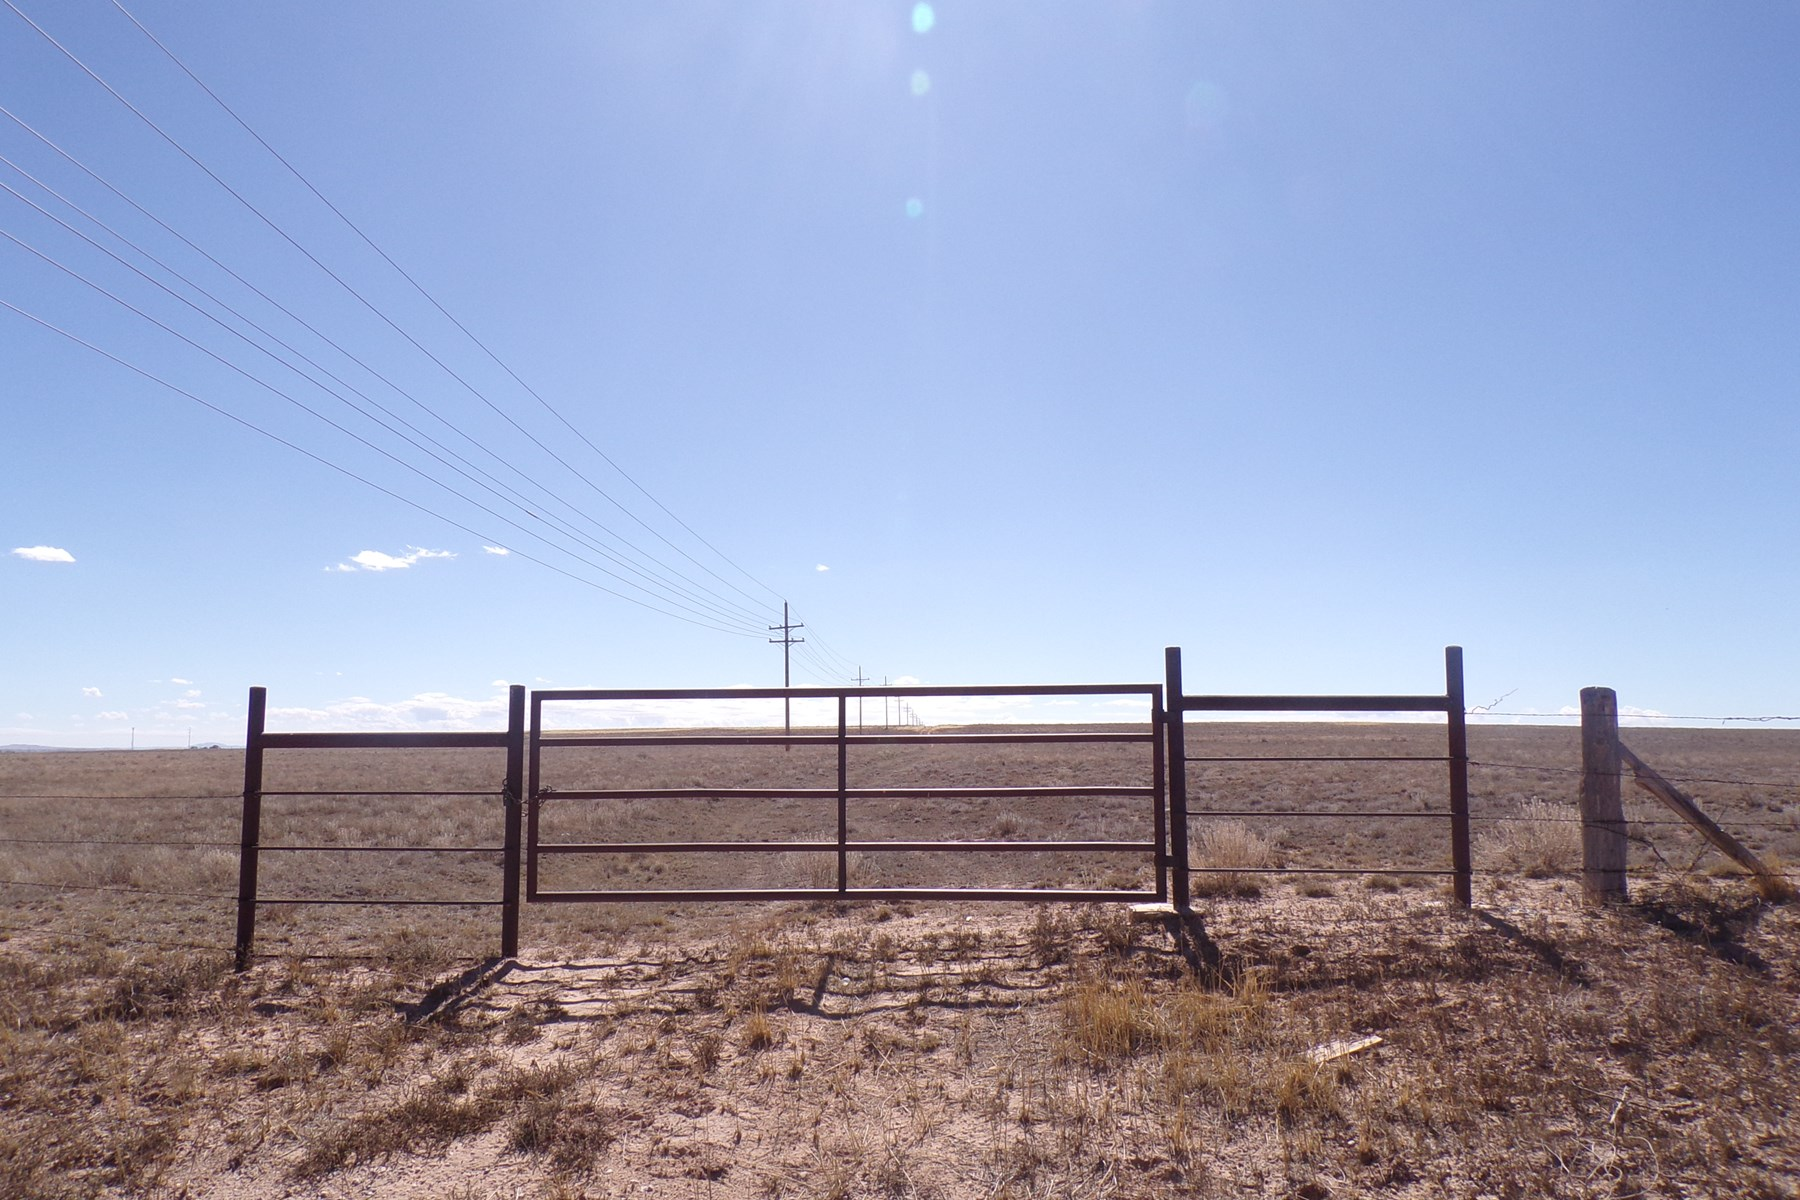 160 Acres of New Mexico Grazing Land For Sale